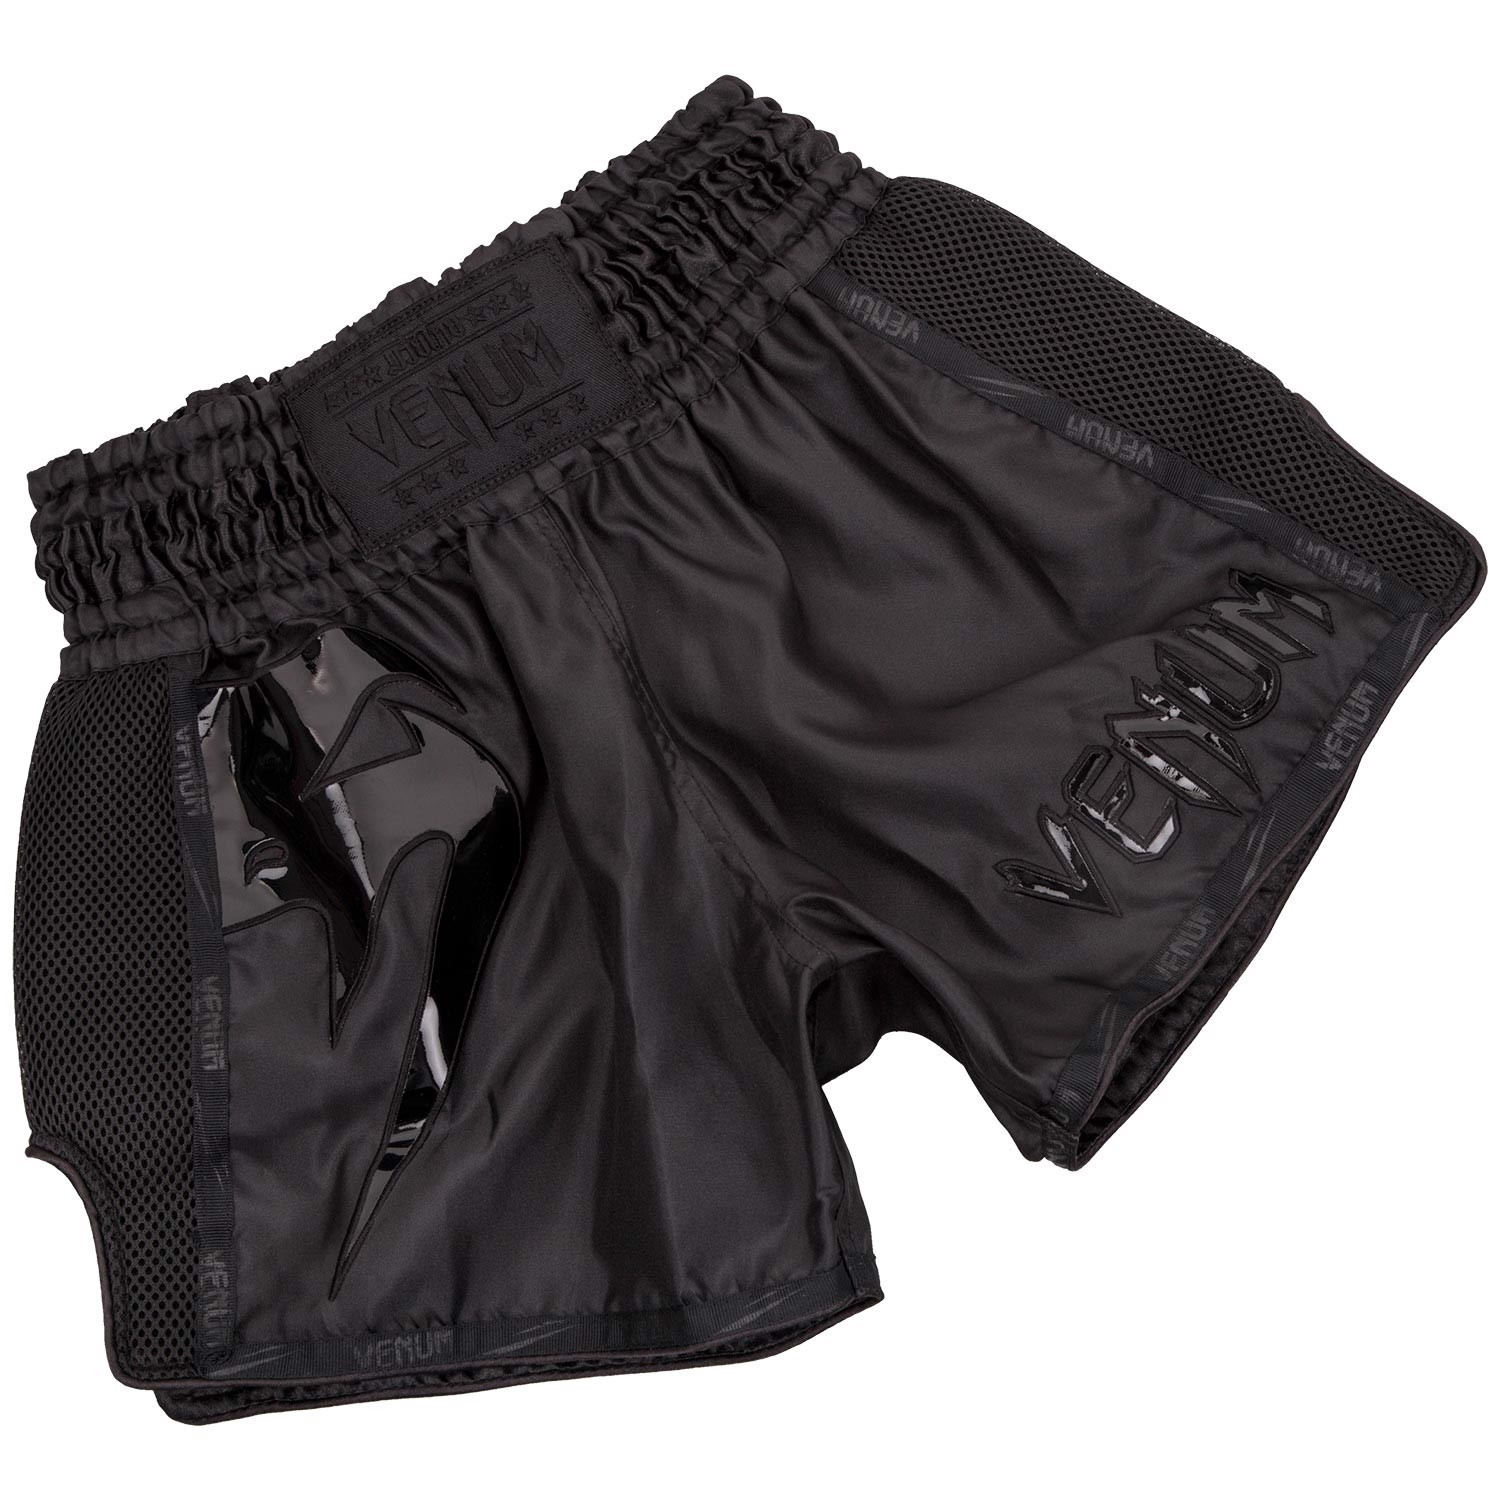 QUẦN VENUM GIANT MUAY THAI SHORTS - BLACK